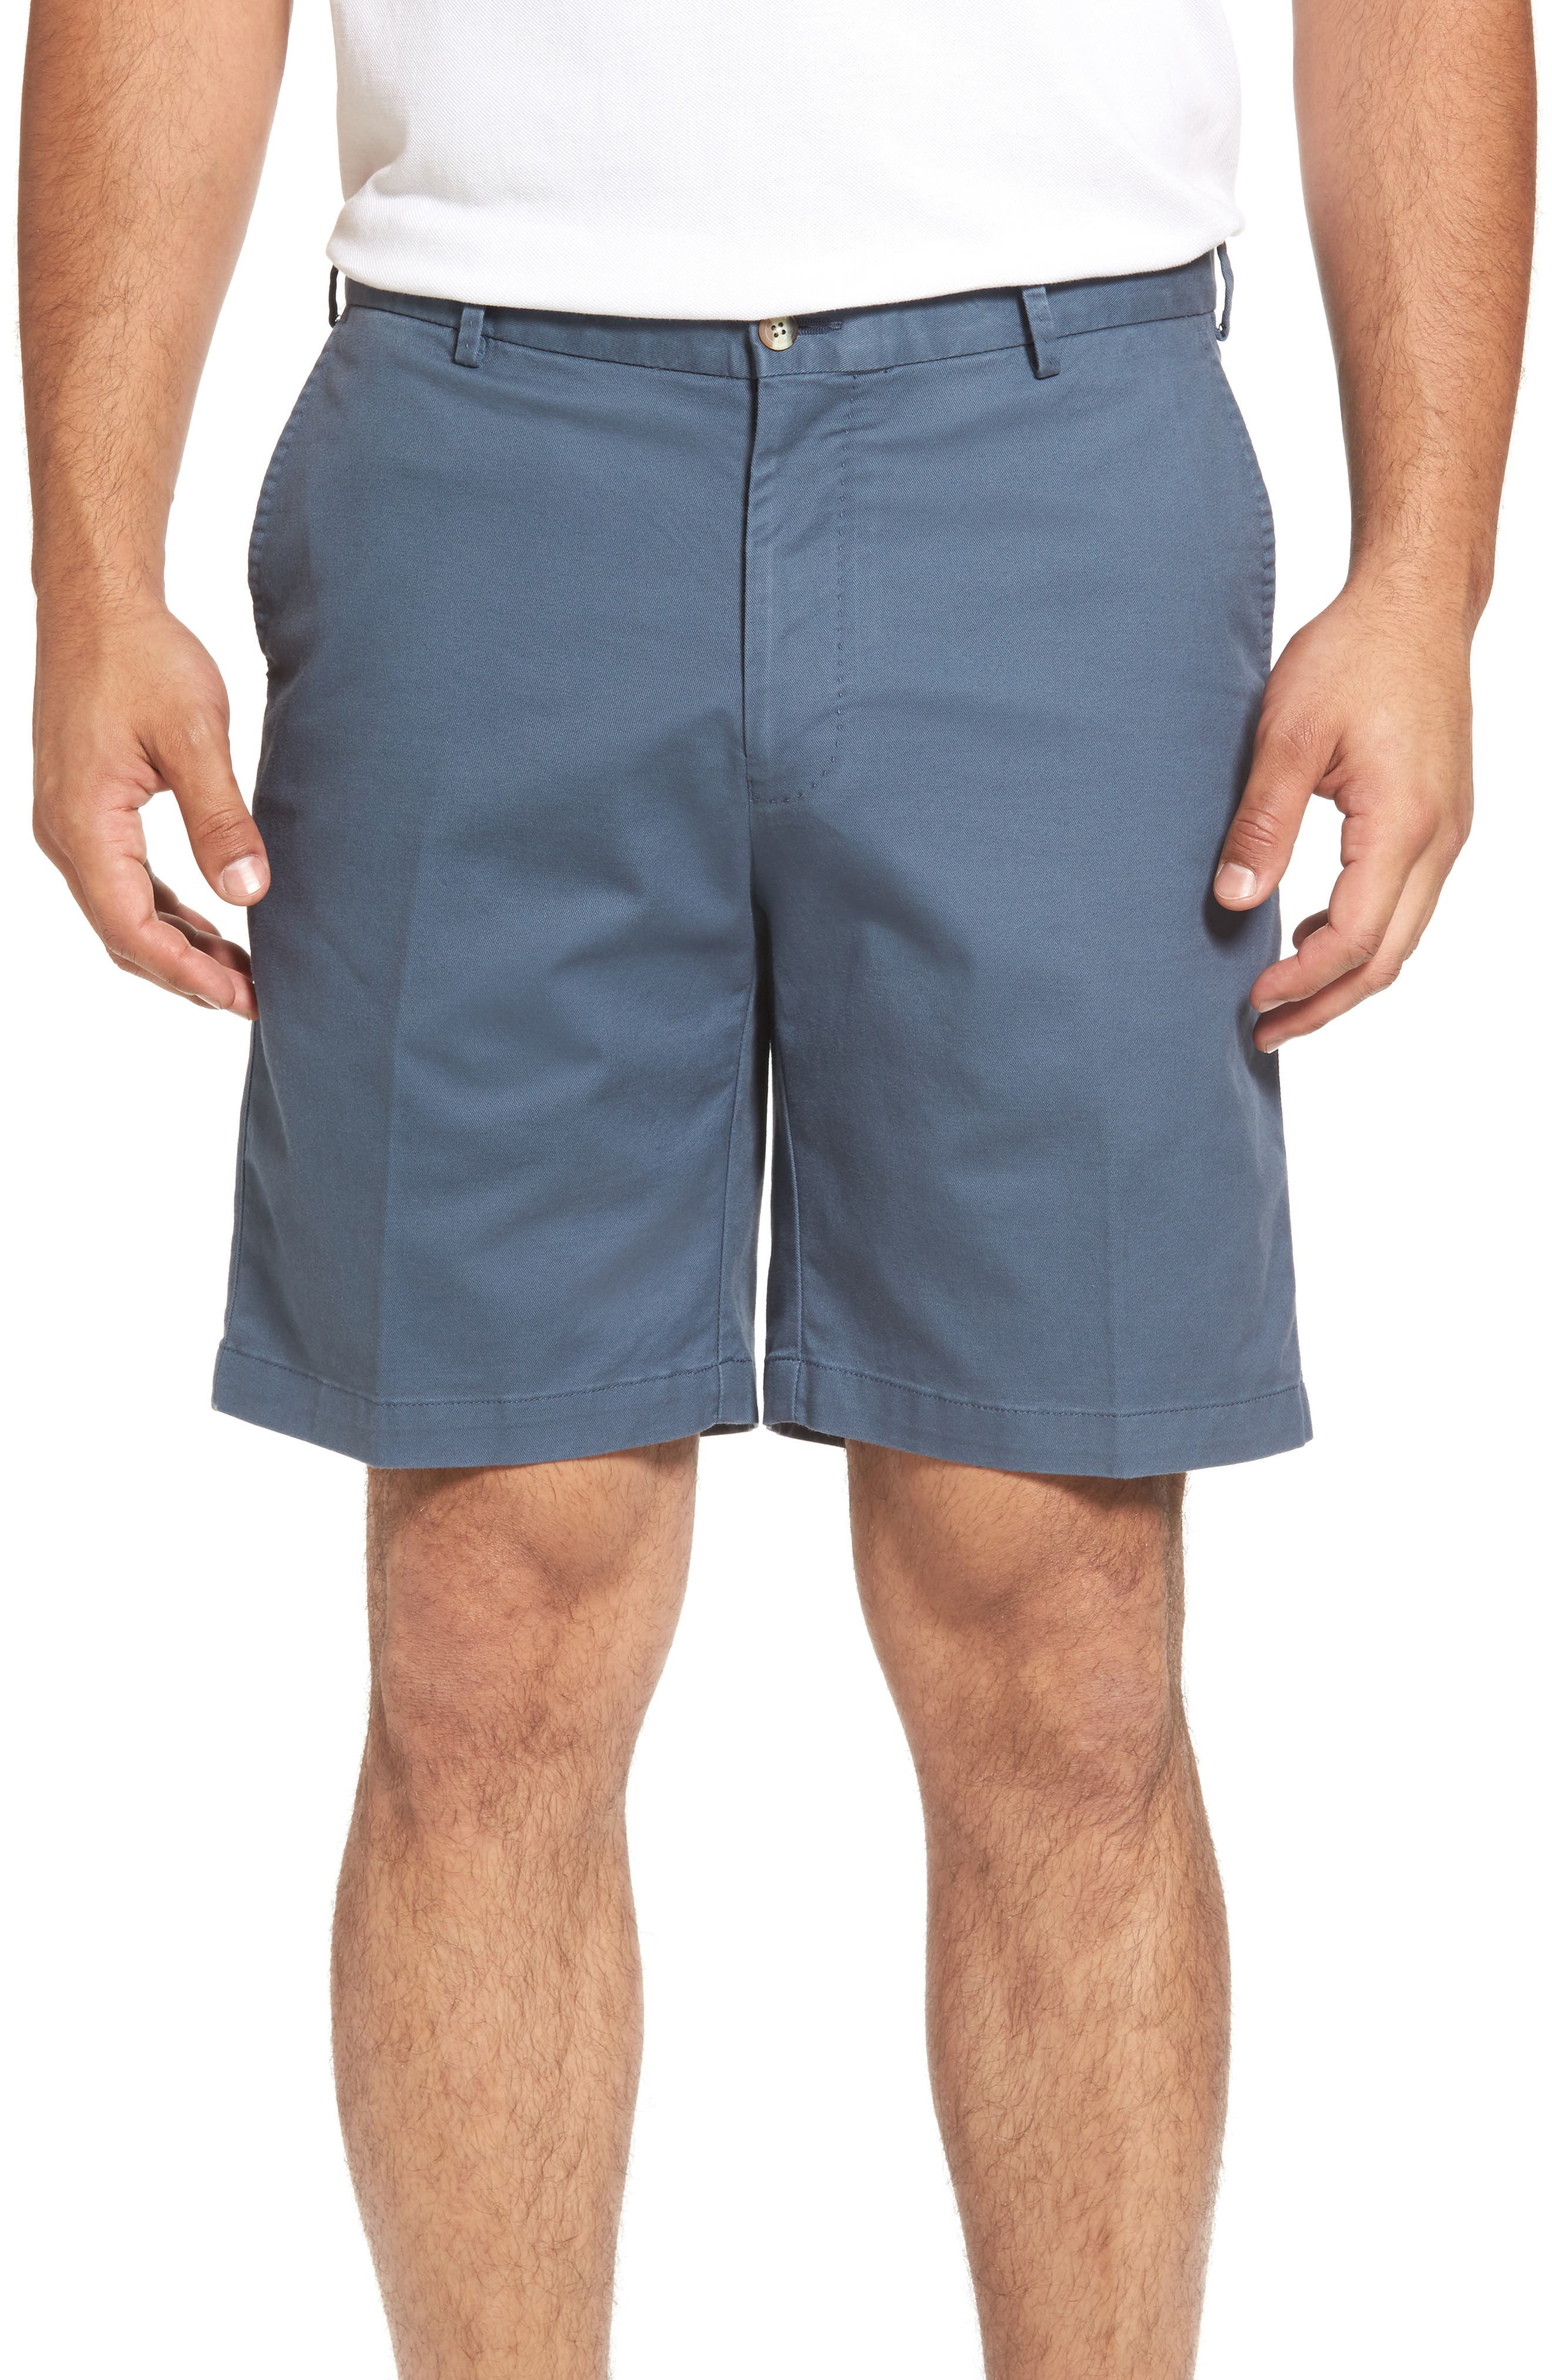 Soft Touch Stretch Twill Shorts,                             Main thumbnail 1, color,                             NAVY